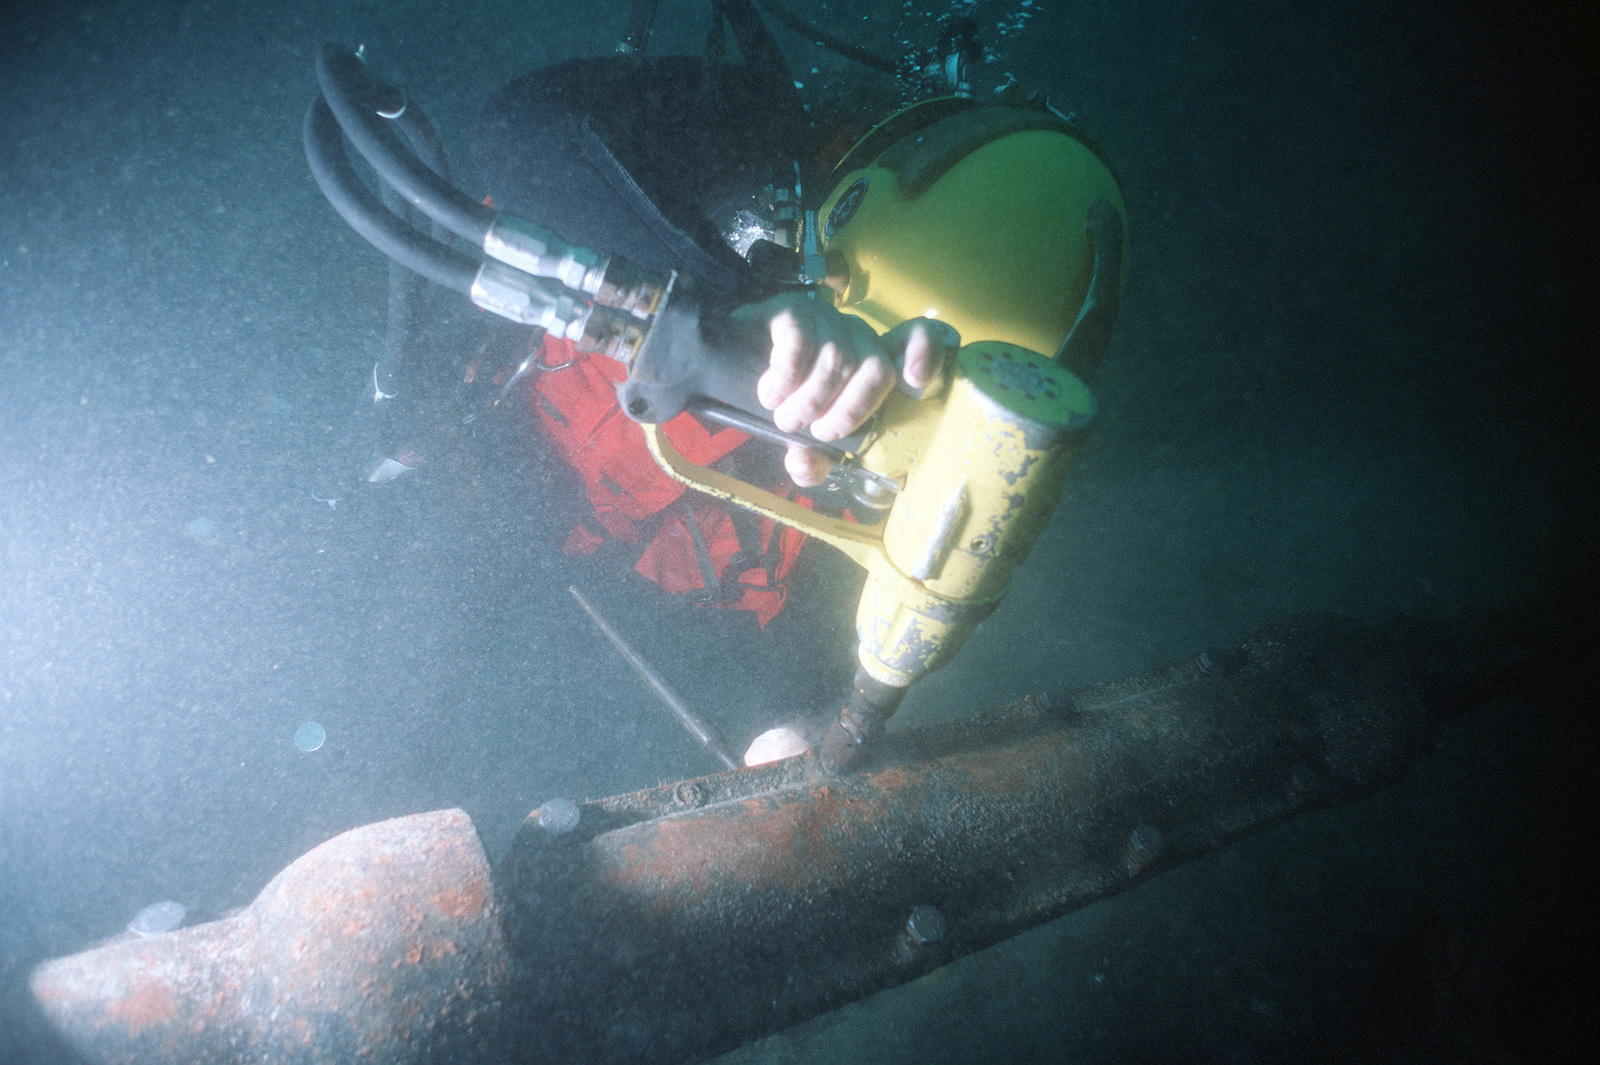 underwater impact wrench to tighten bolts on installed split pipe used to protect cable on the ocean floor.